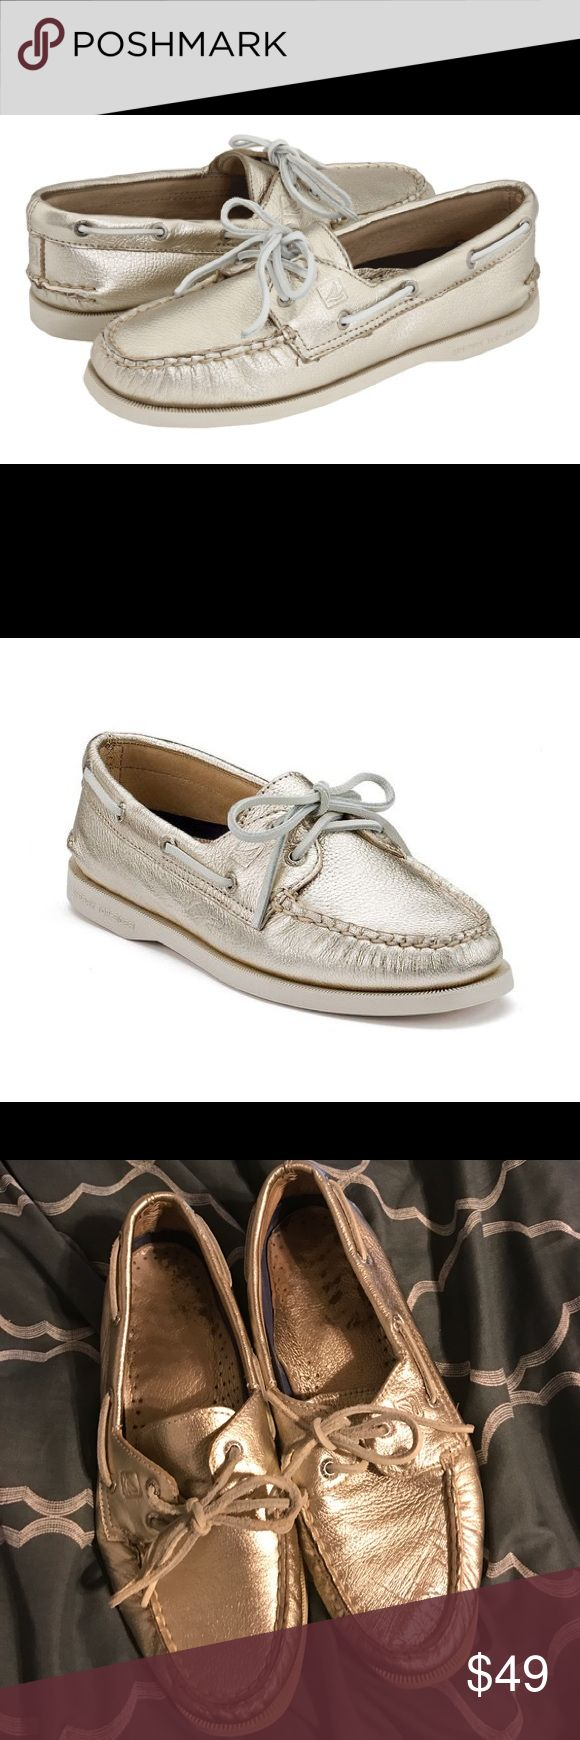 platinum gold sperry topsider boat shoes In EXCELLENT condition with minimal signs of wear! 50% of the proceeds from the sale of this item will be donated to the ACLU and/or Planned Parenthood! 20% off bundles! Make me an offer! Sperry Top-Sider Shoes Flats & Loafers